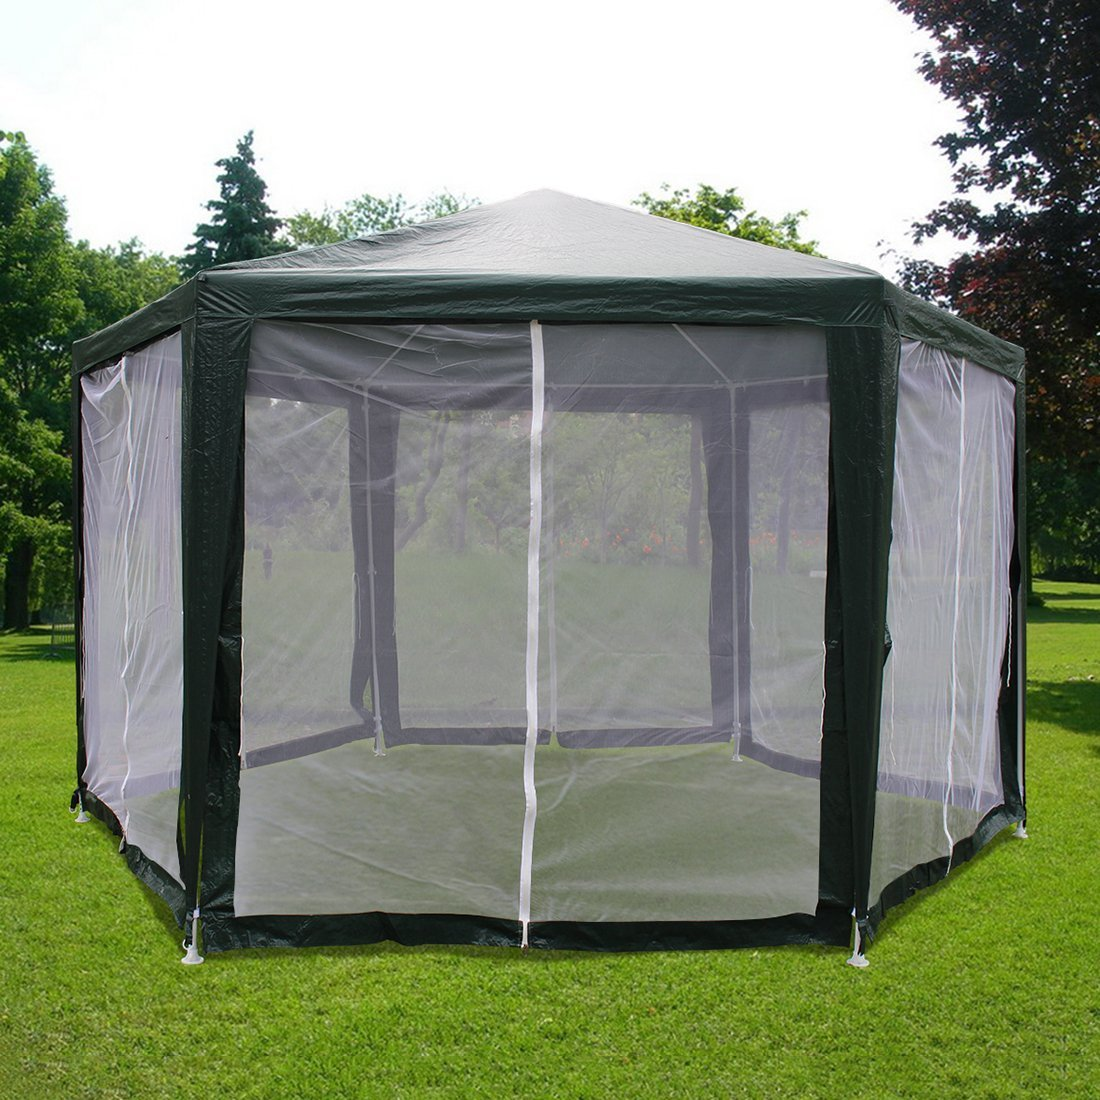 Quictent Outdoor Canopy Gazebo Party Wedding tent Screen House Sun Shade Shelter with Fully Enclosed Mesh Side Wall... by